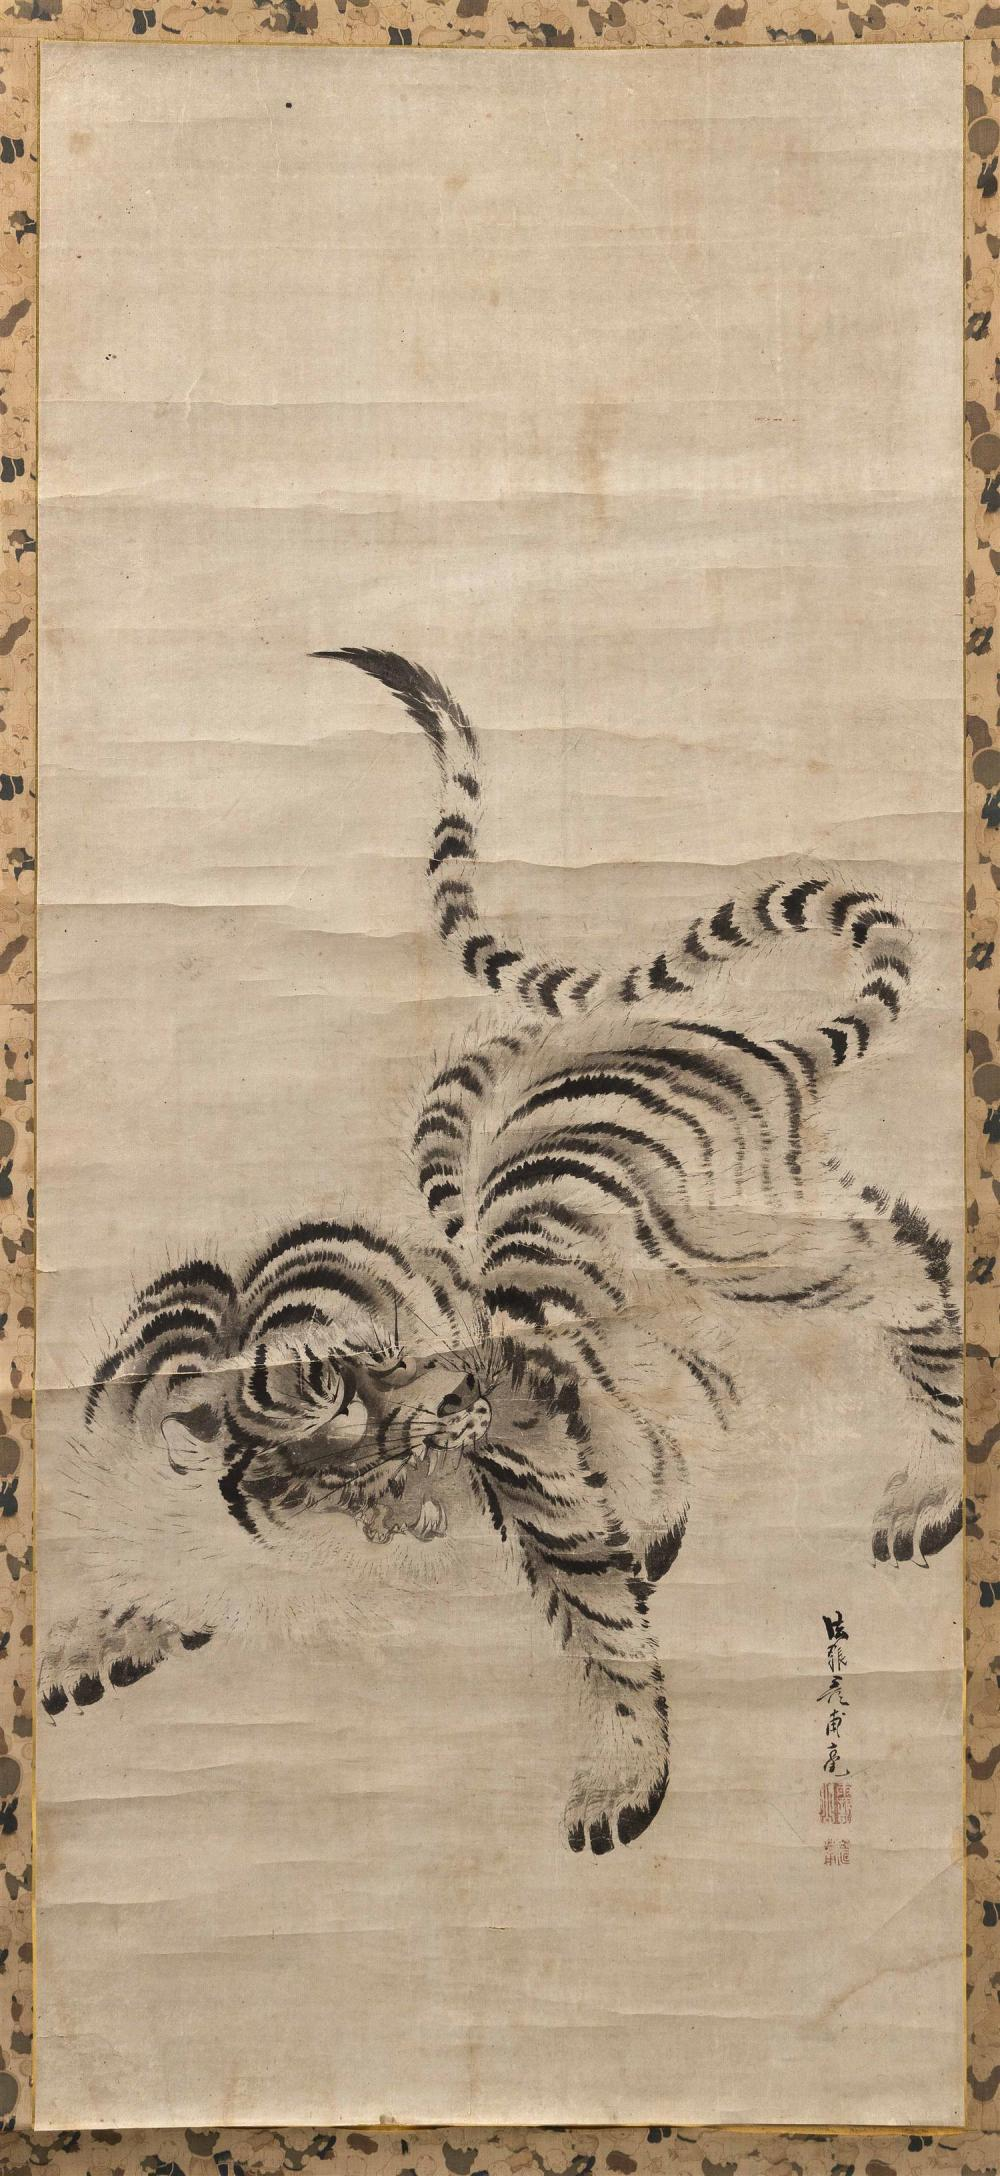 "JAPANESE SCROLL PAINTING ON PAPER ATTRIBUTED TO KISHI GANKU Depicts a fierce snarling tiger. Signed and seal marked. 48.25"" x 21.25""..."